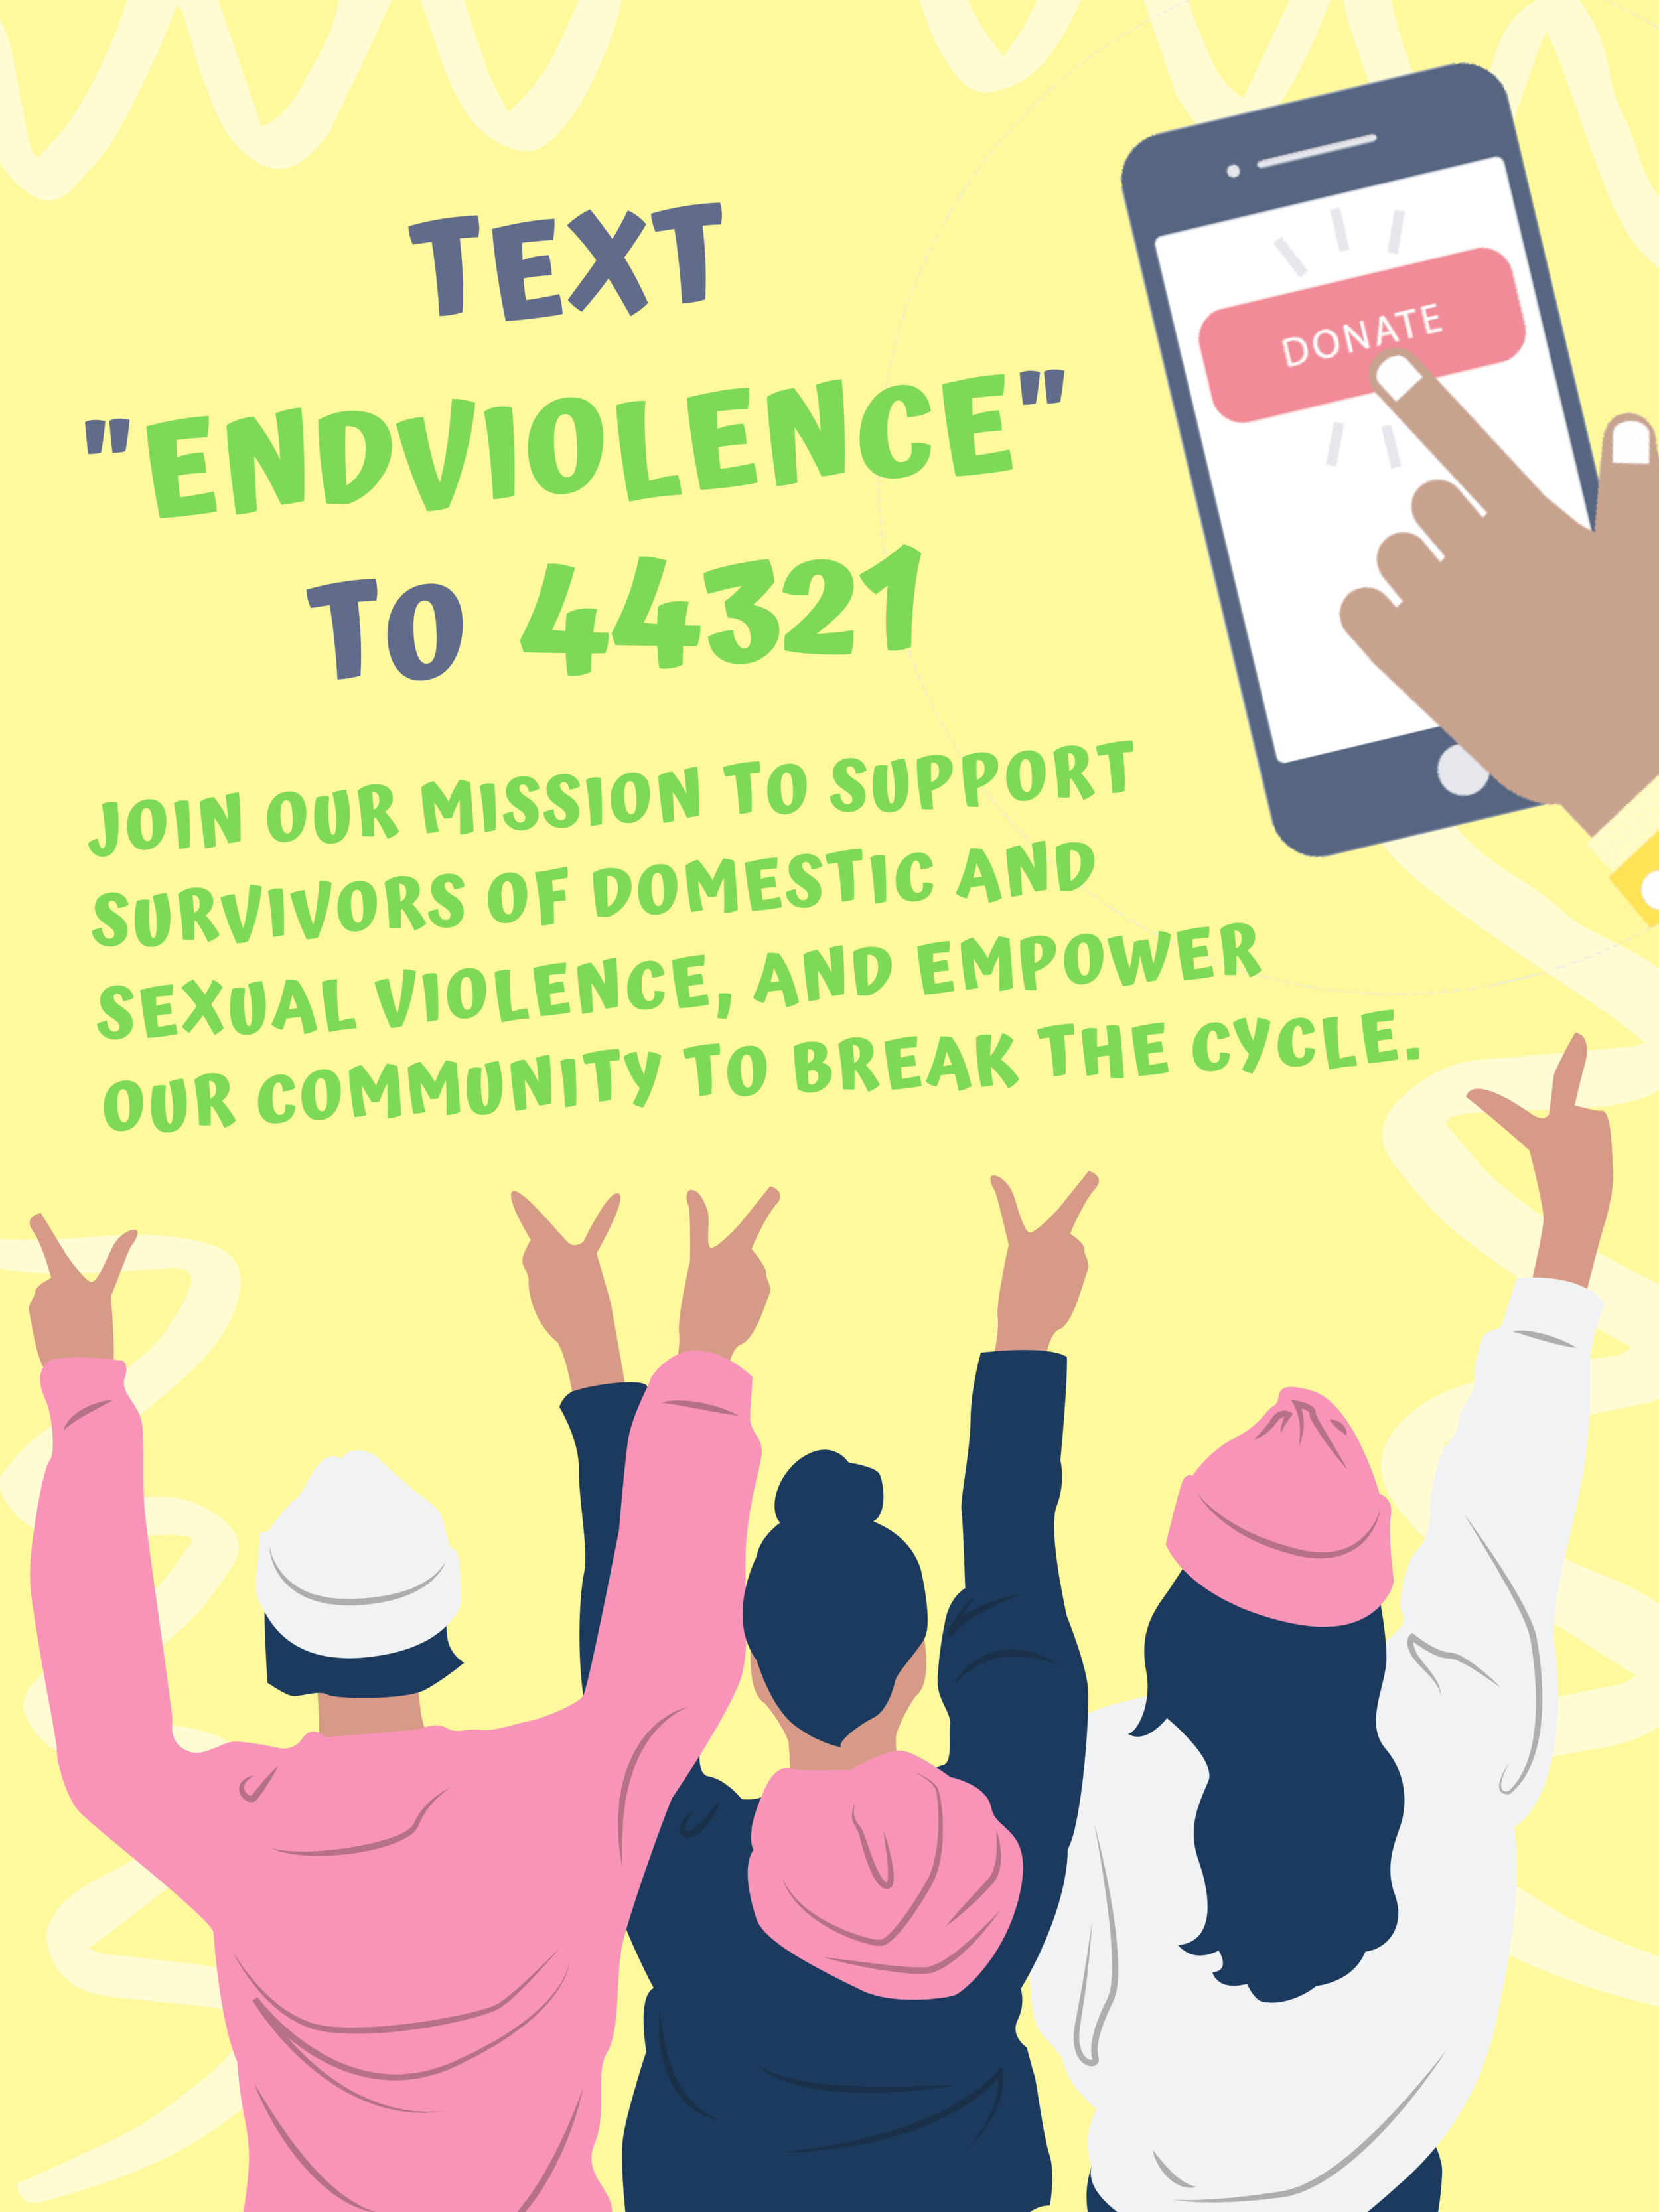 """On your mobile? - You can easily access our donation form on your mobile phone by texting """"endviolence"""" to 44321."""